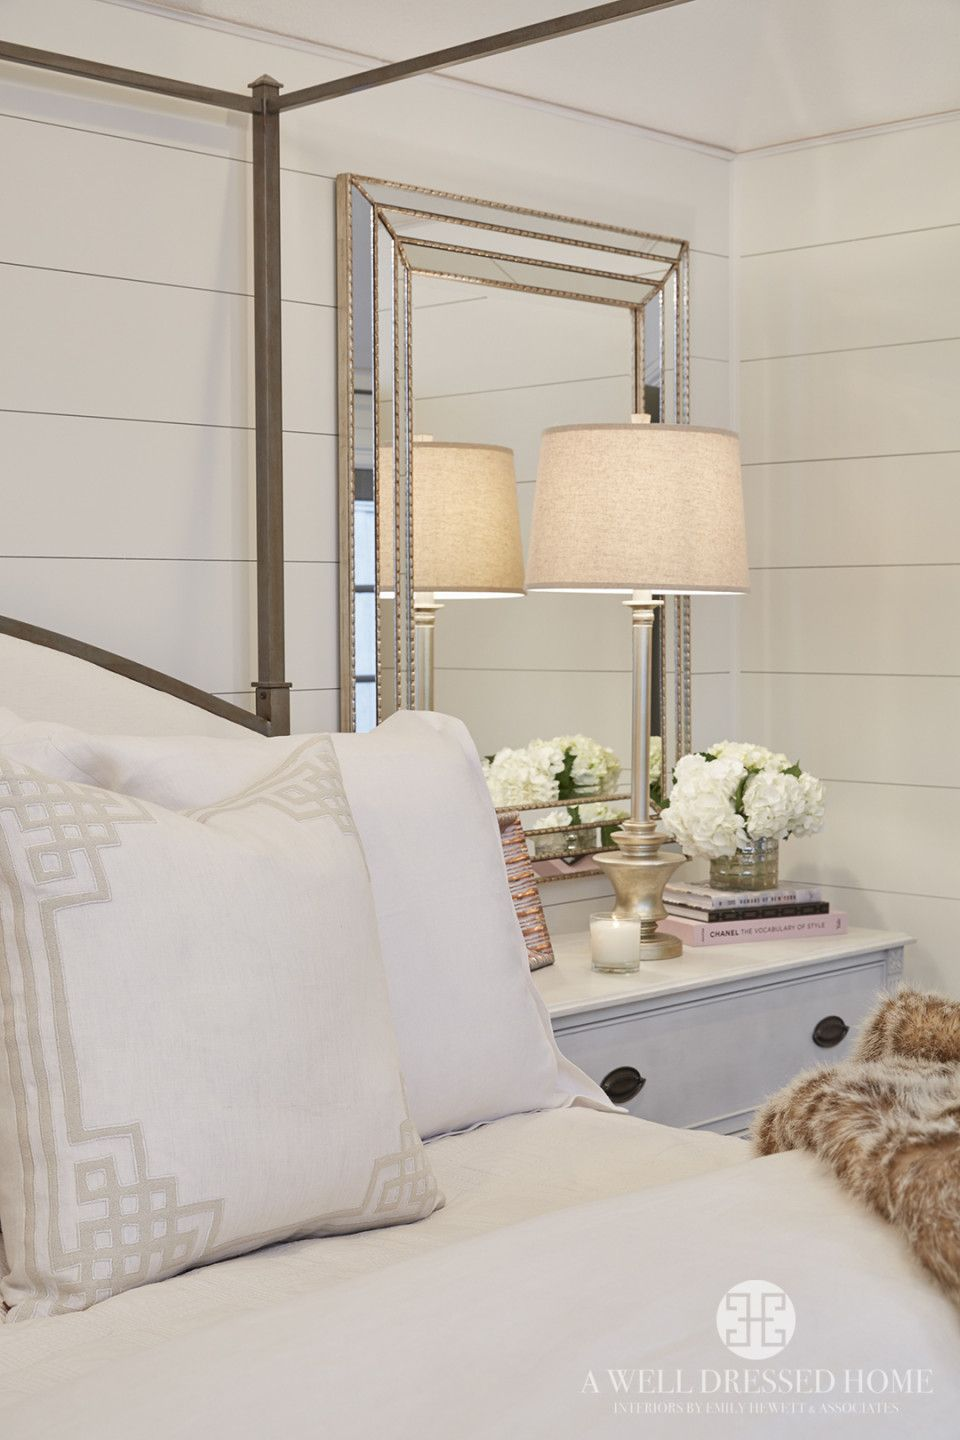 pretty bedroom - shiplap walls, mirror bedsides, iron bed frame, soft whites and neutrals ...